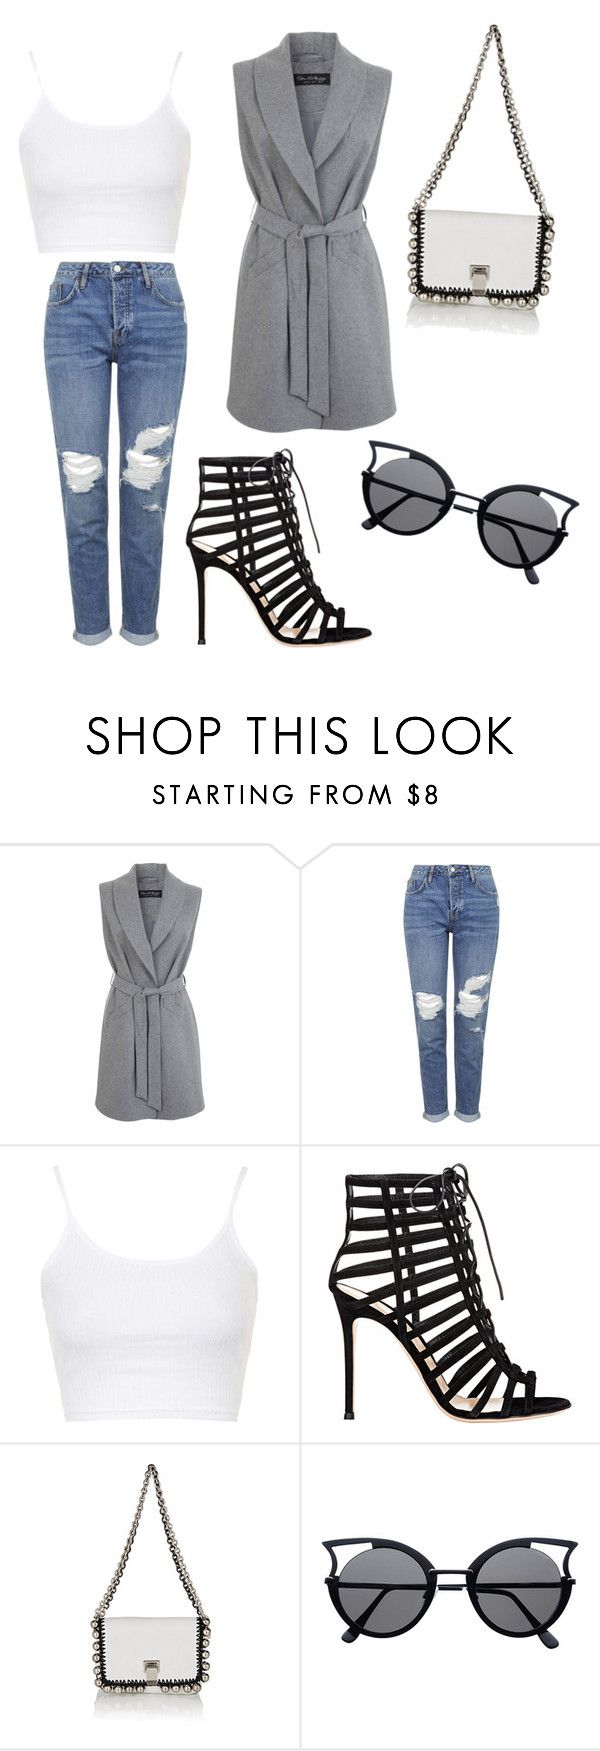 """Untitled #40"" by sexyvictoria77 ❤ liked on Polyvore featuring Miss Selfridge, Topshop, Gianvito Rossi and Proenza Schouler"